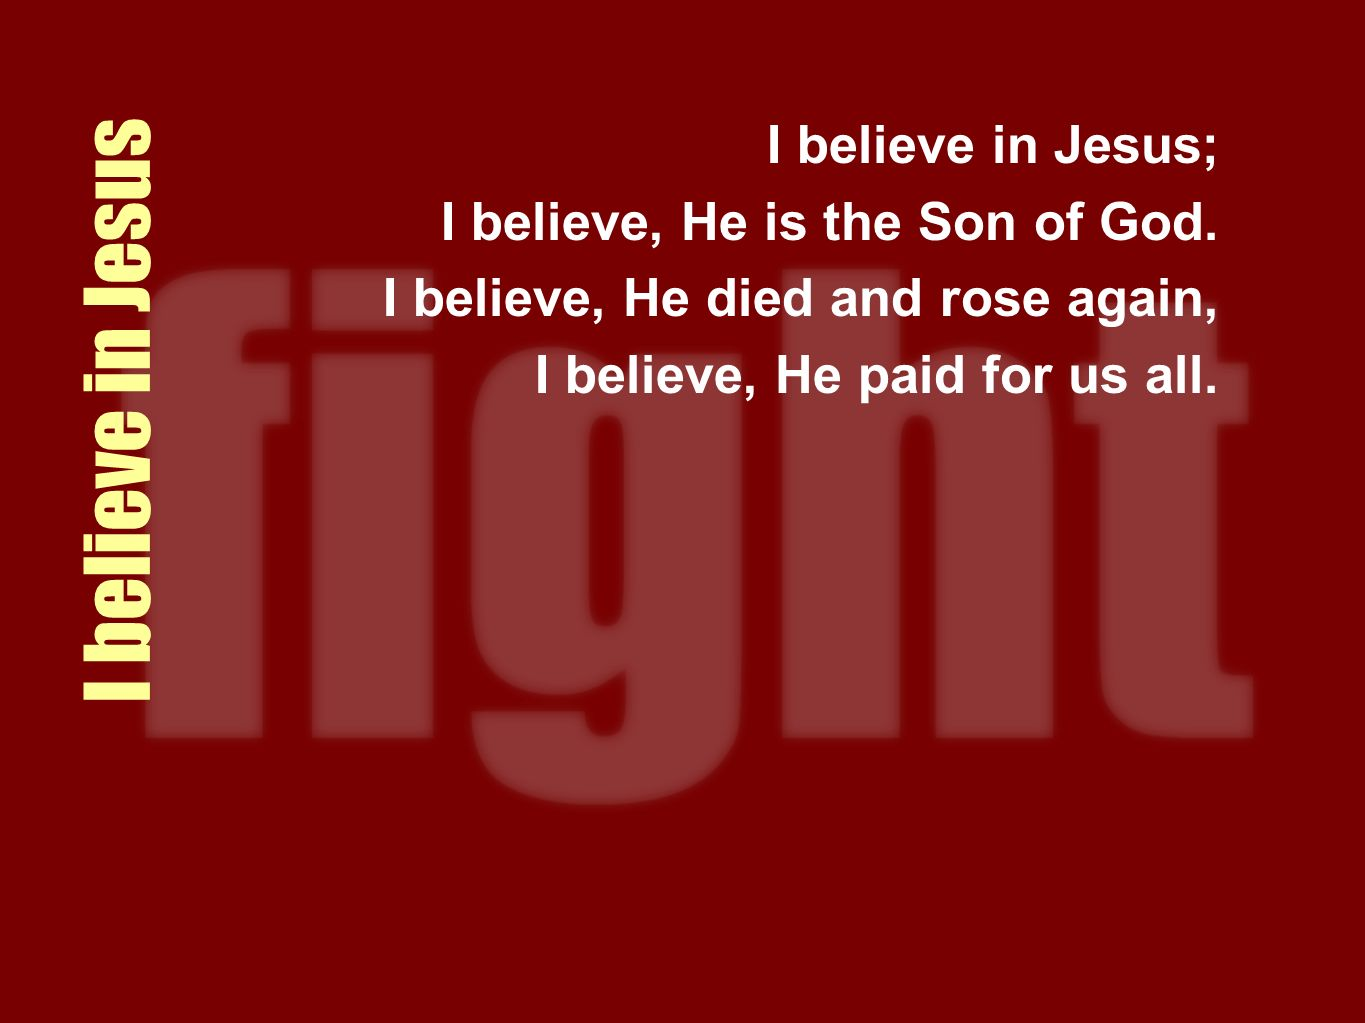 I believe in Jesus I believe in Jesus; I believe, He is the Son of God. I believe, He died and rose again, I believe, He paid for us all.